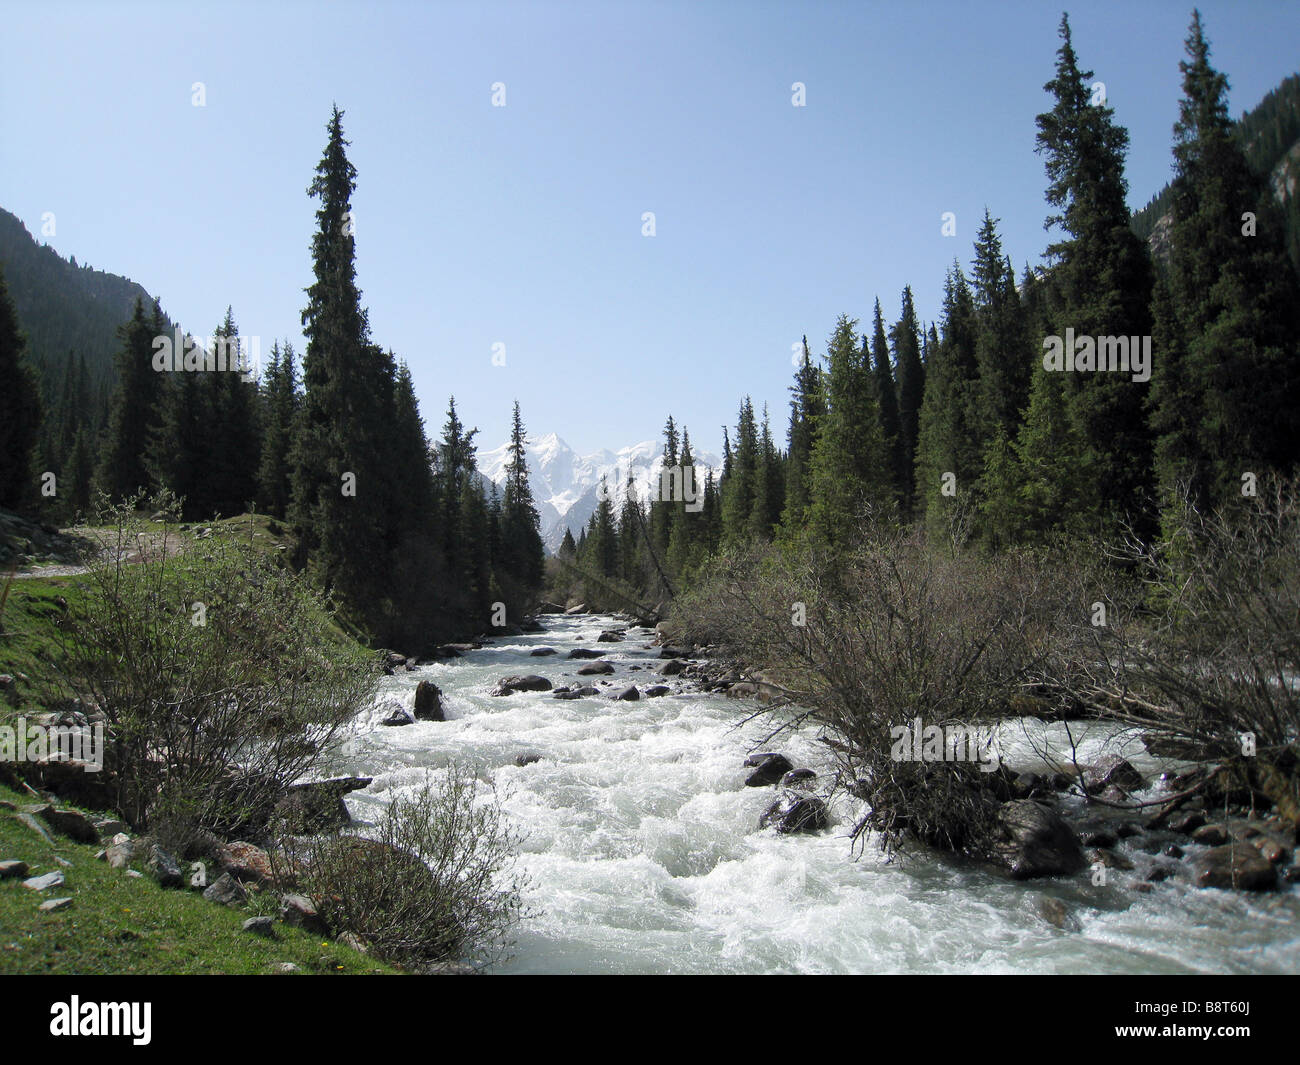 Stream at Ala-arch gorge, Kyrgystan - Stock Image